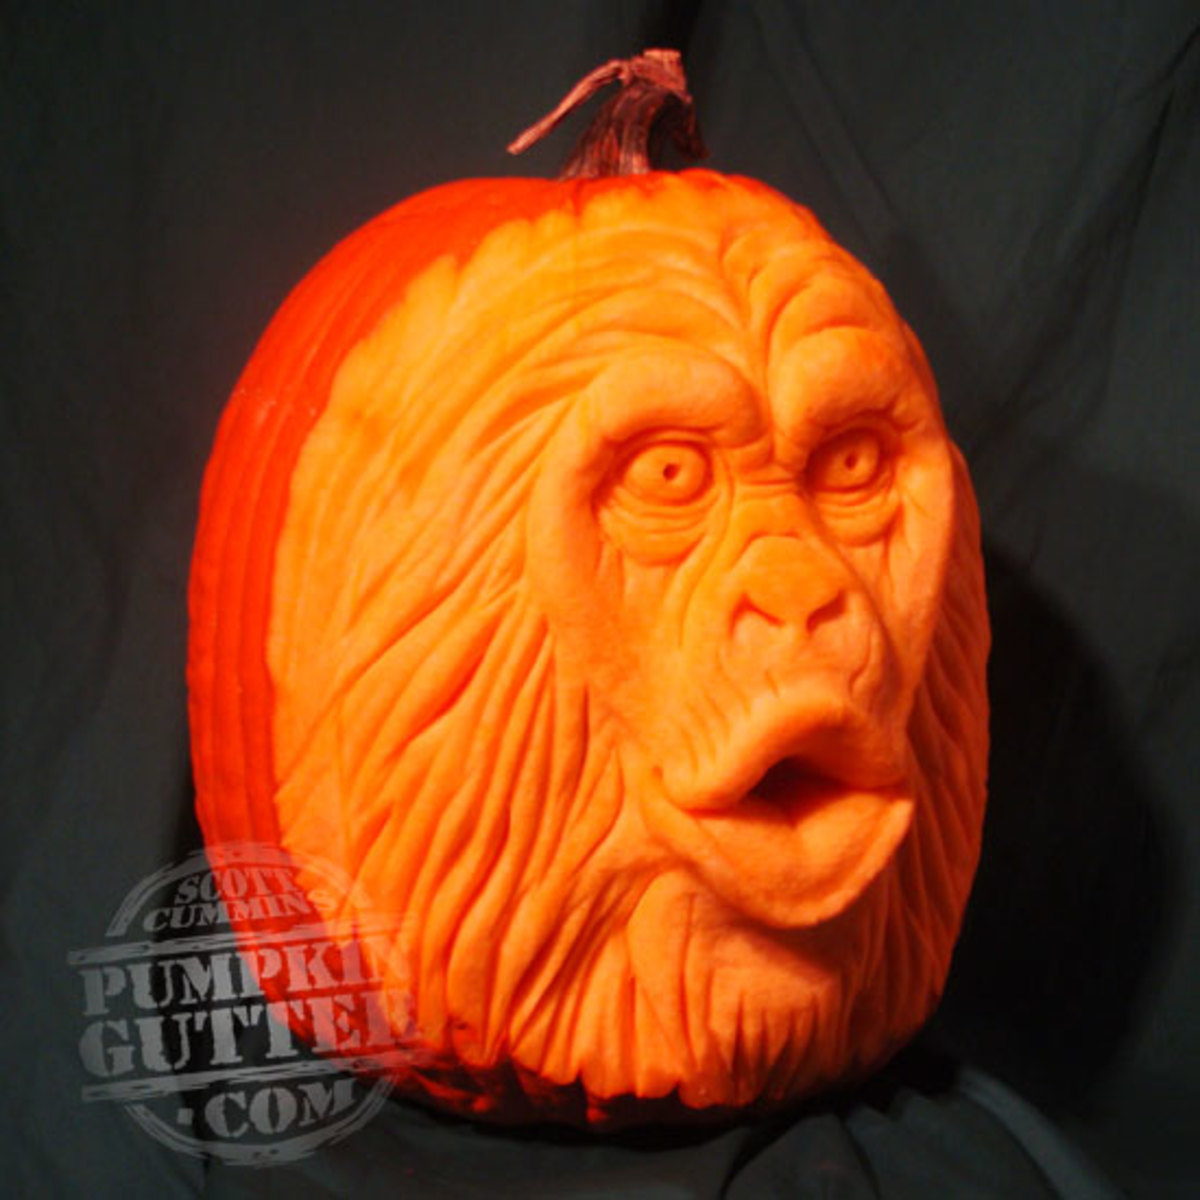 Chimp pumpkin, Planet of the Apes?,